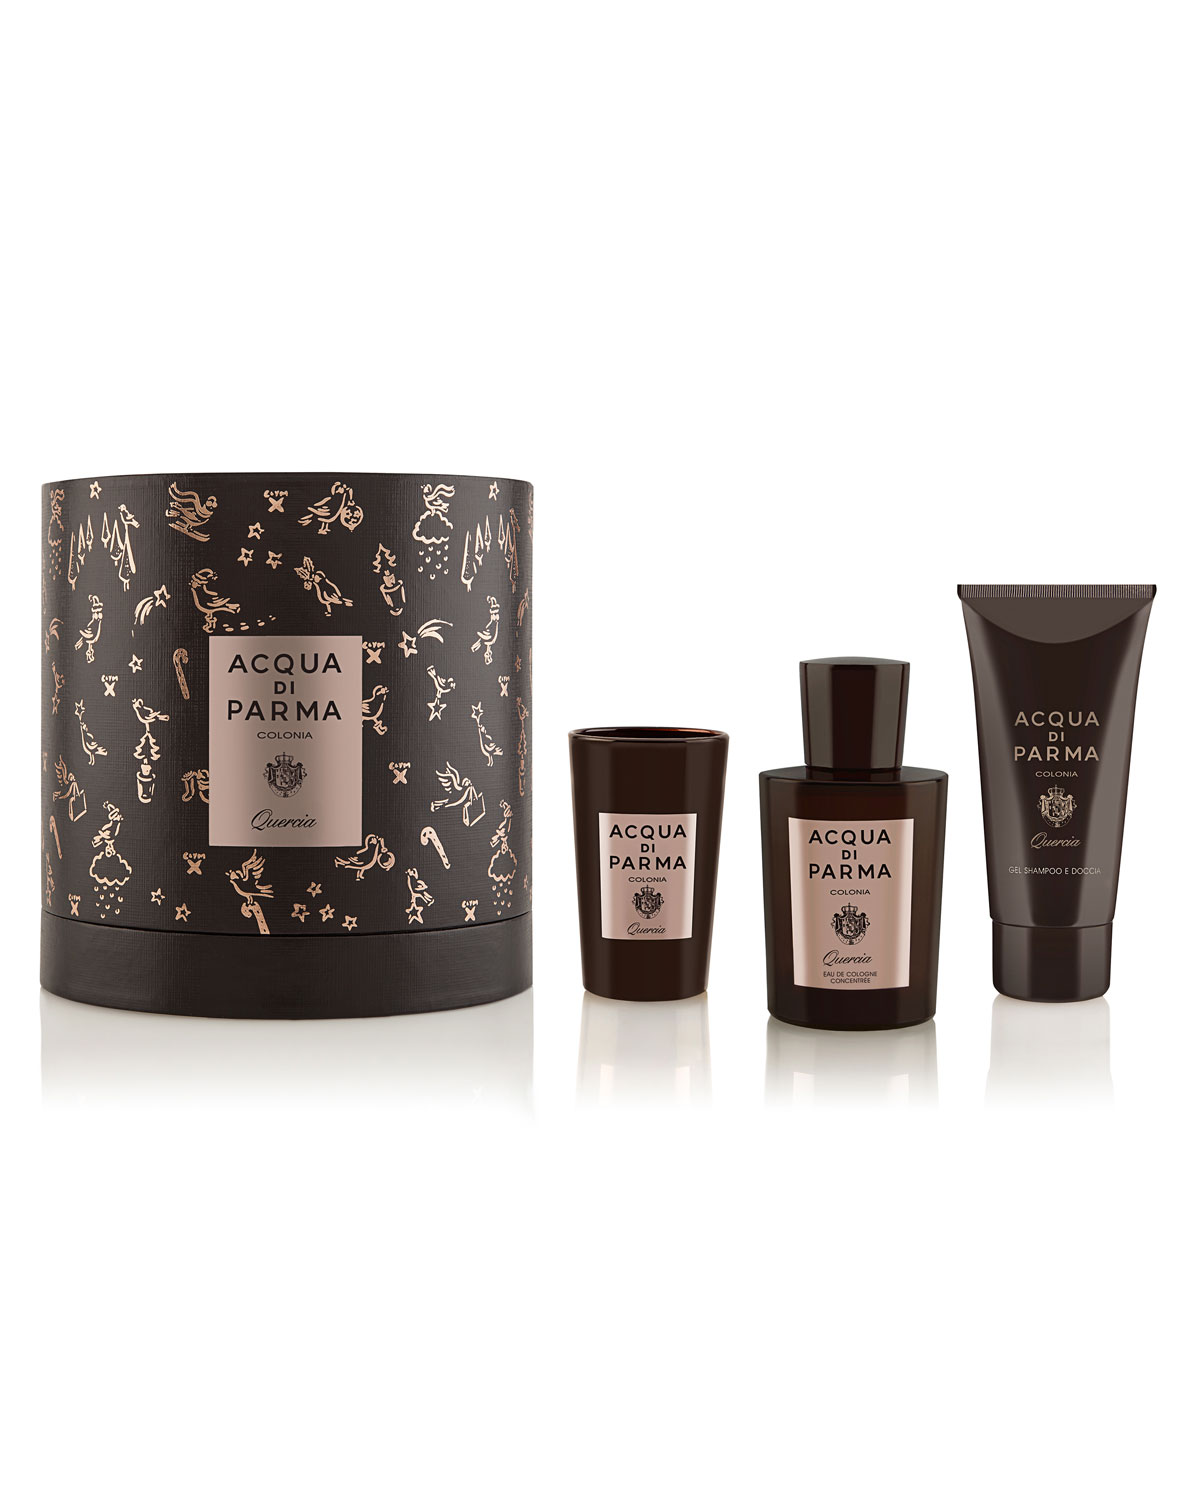 Acqua Di Parma COLONIA QUERCIA GIFT SET ($306 VALUE)